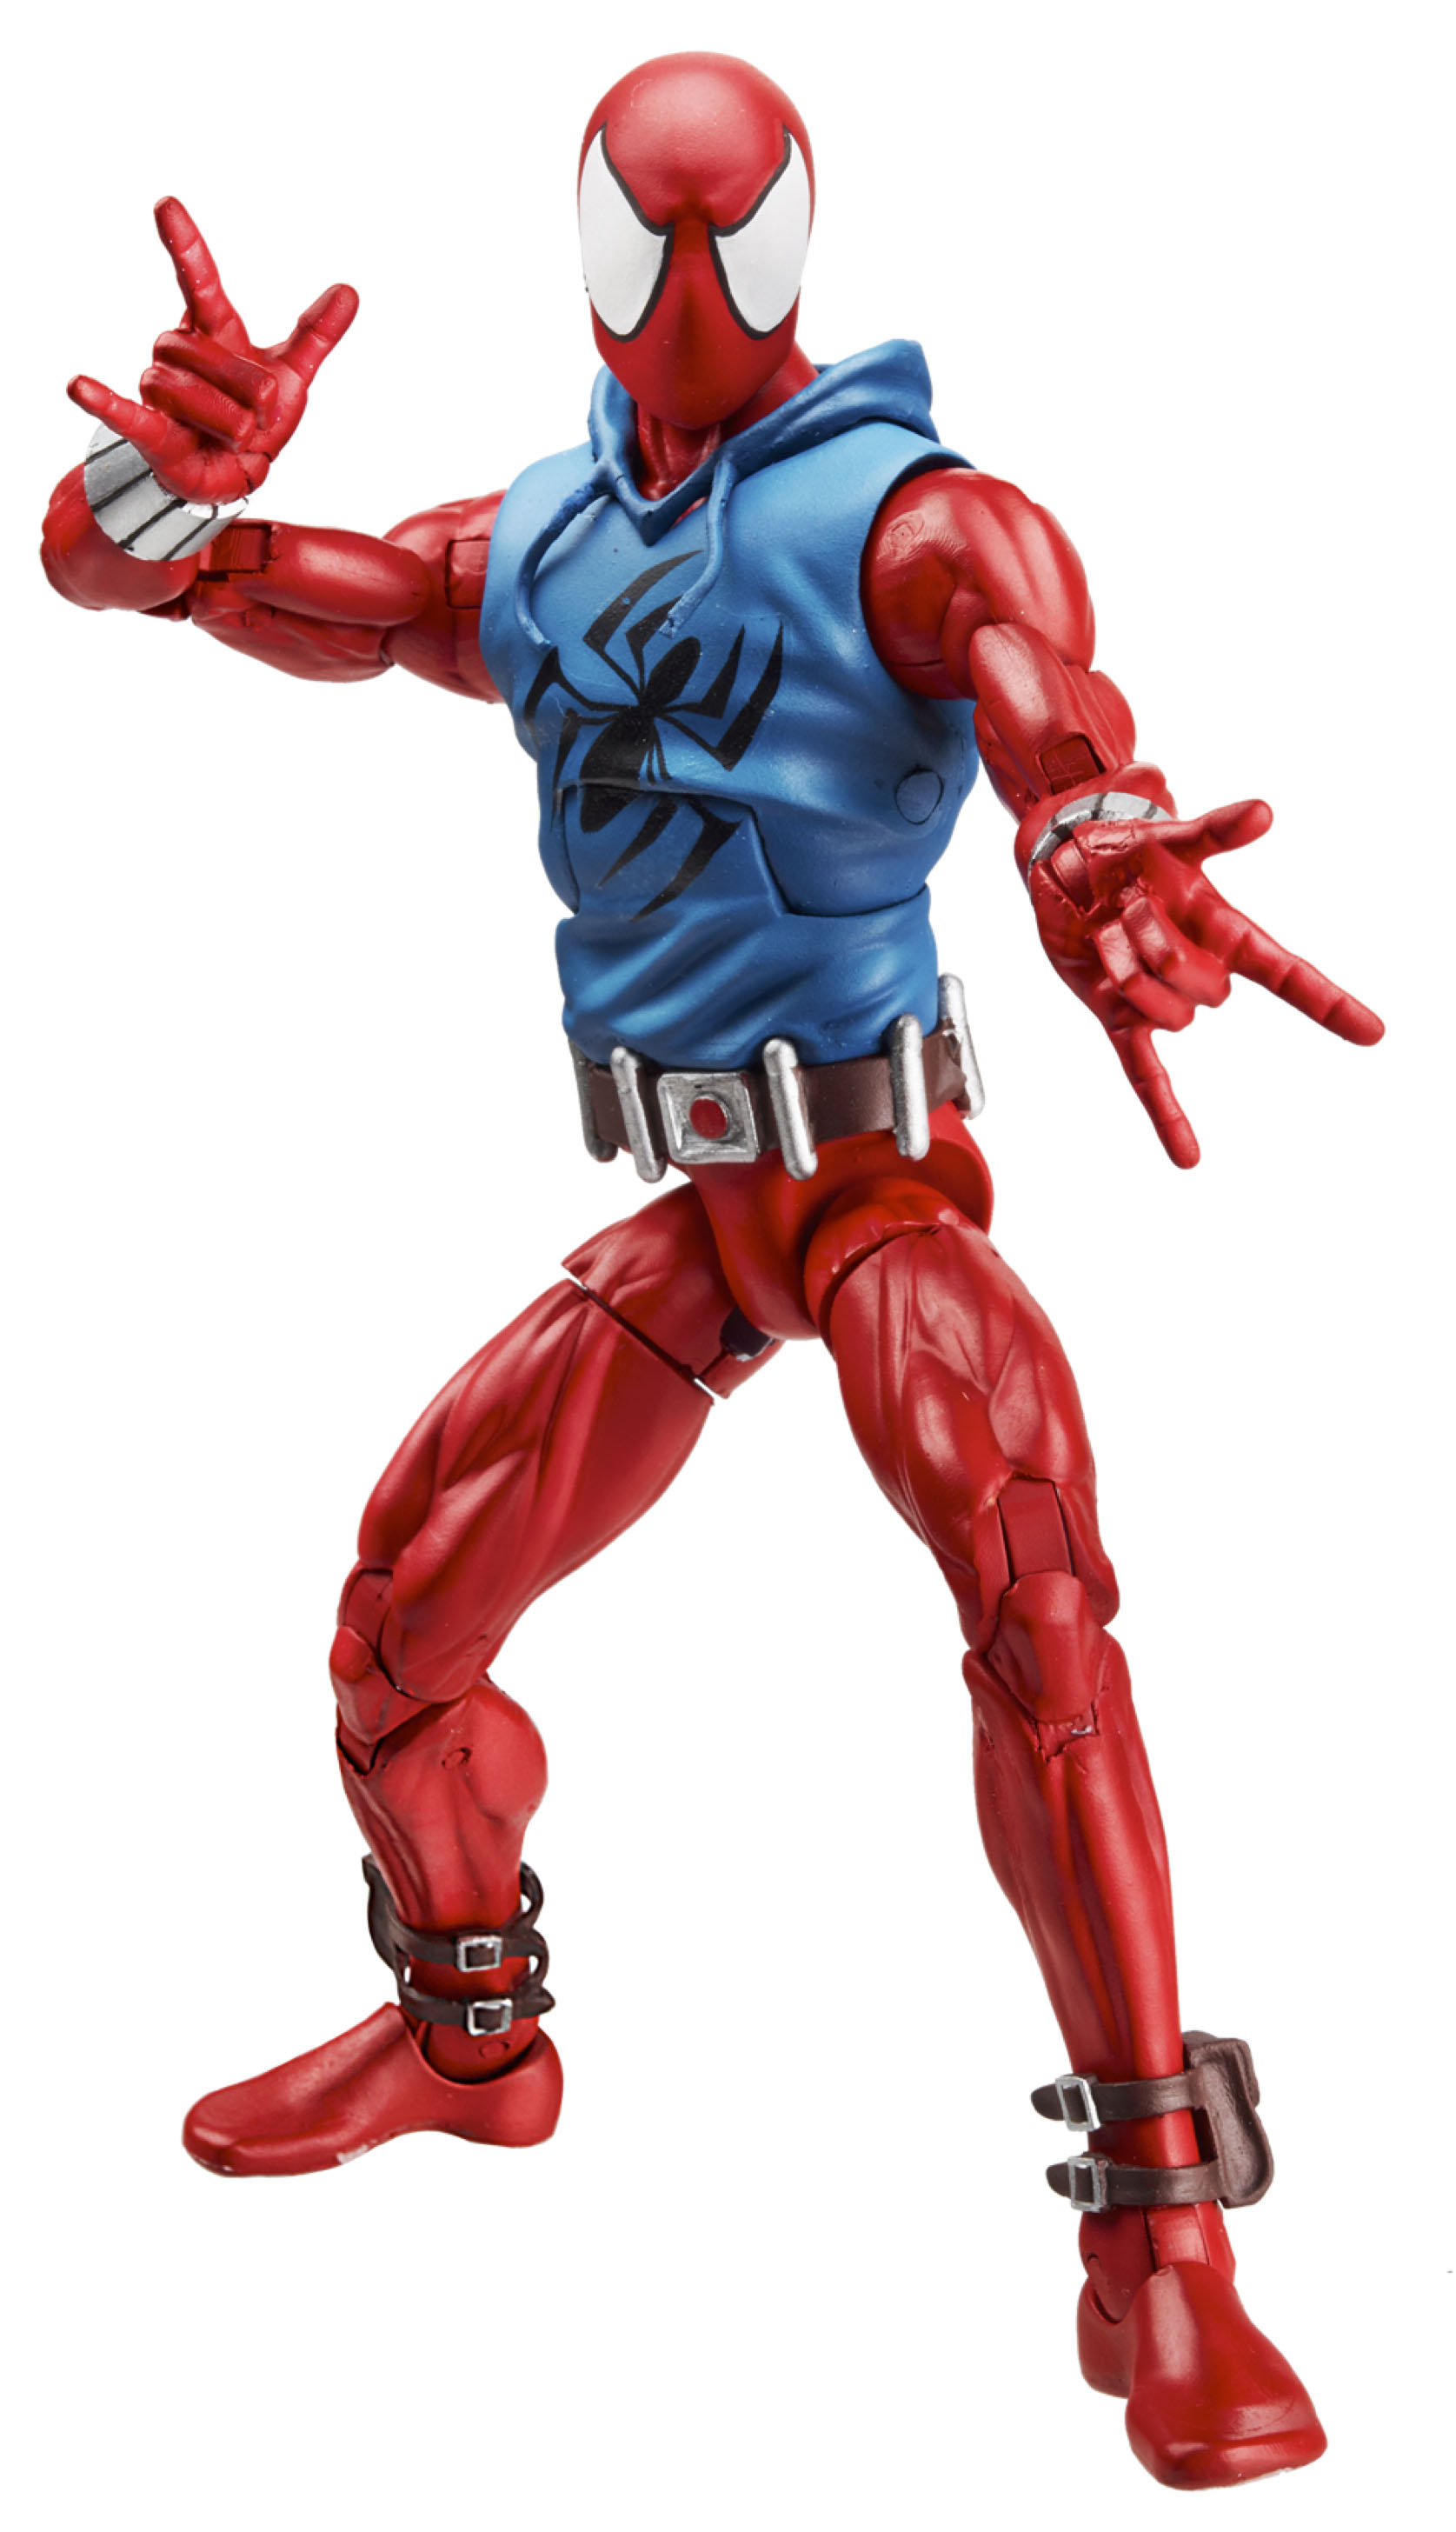 Marvel Legends Official Photos From Toy Fair 2015 The